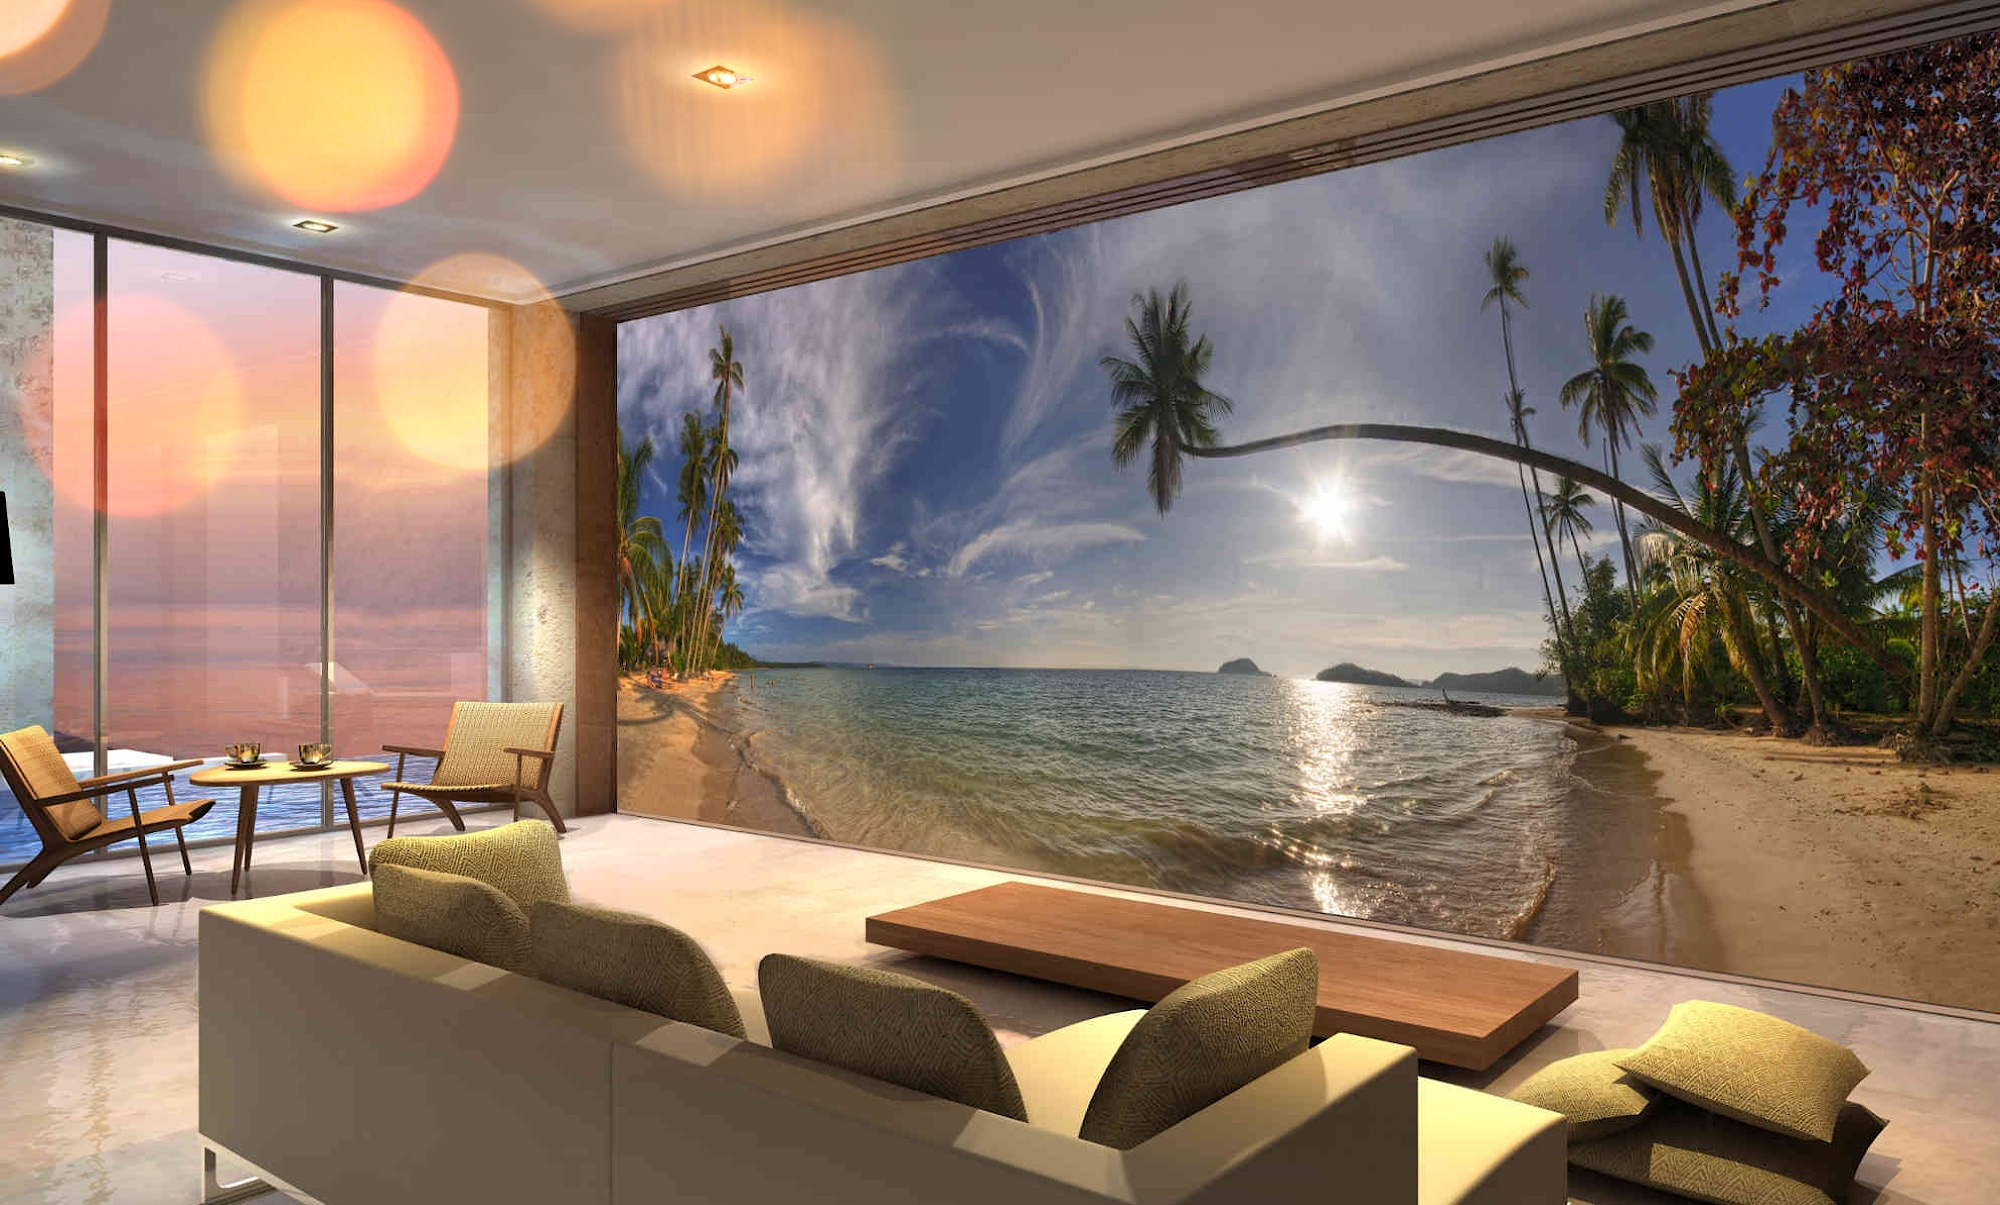 Wall Mural - Interior Design Trends in 2021